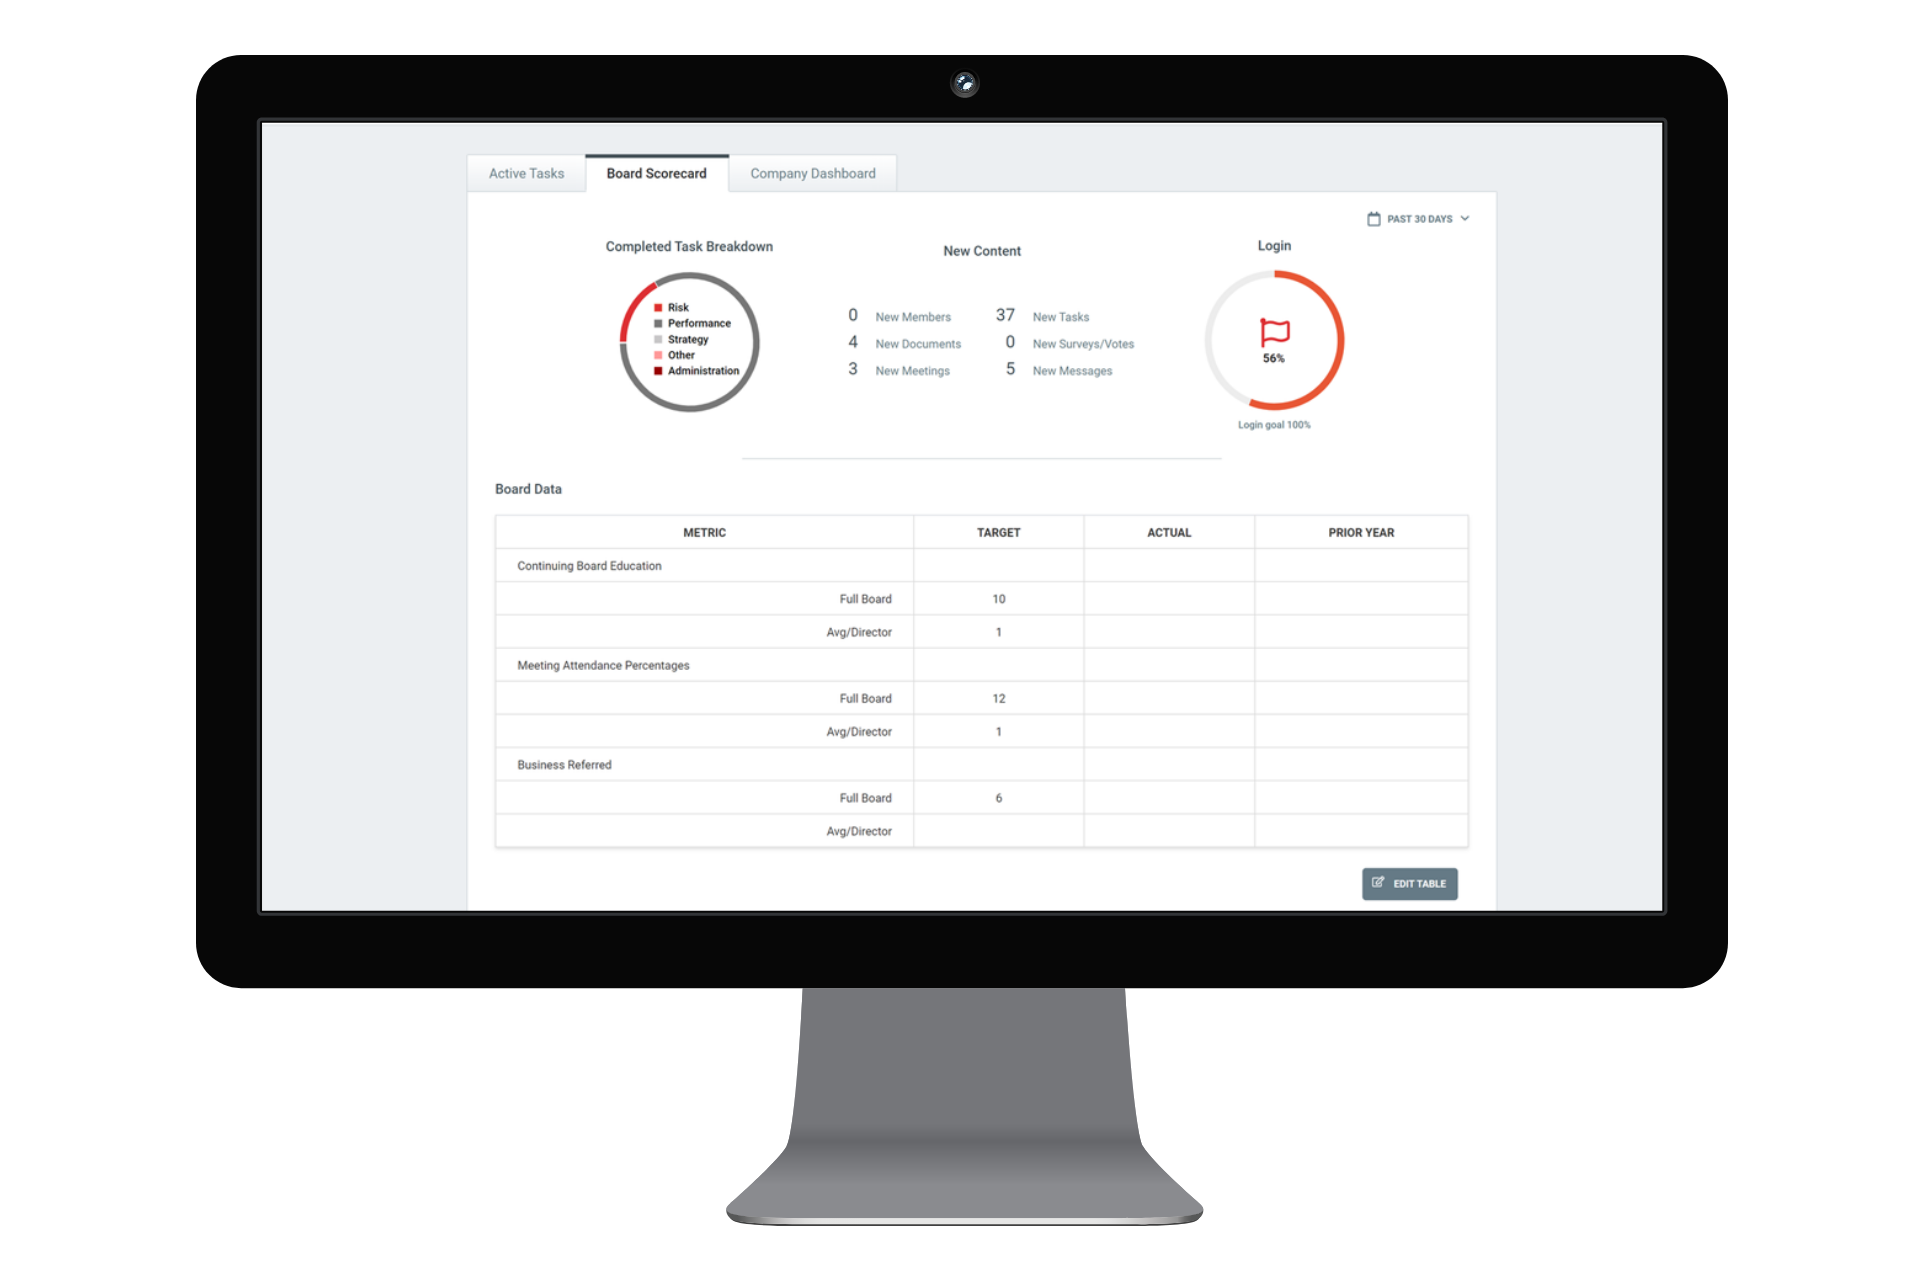 Outcomes - REAL TIME MEASUREMENT FOR TRANSPARENCY & ACCOUNTABILITYCompany dashboard and balanced board scorecard measure and communicate progress in real time